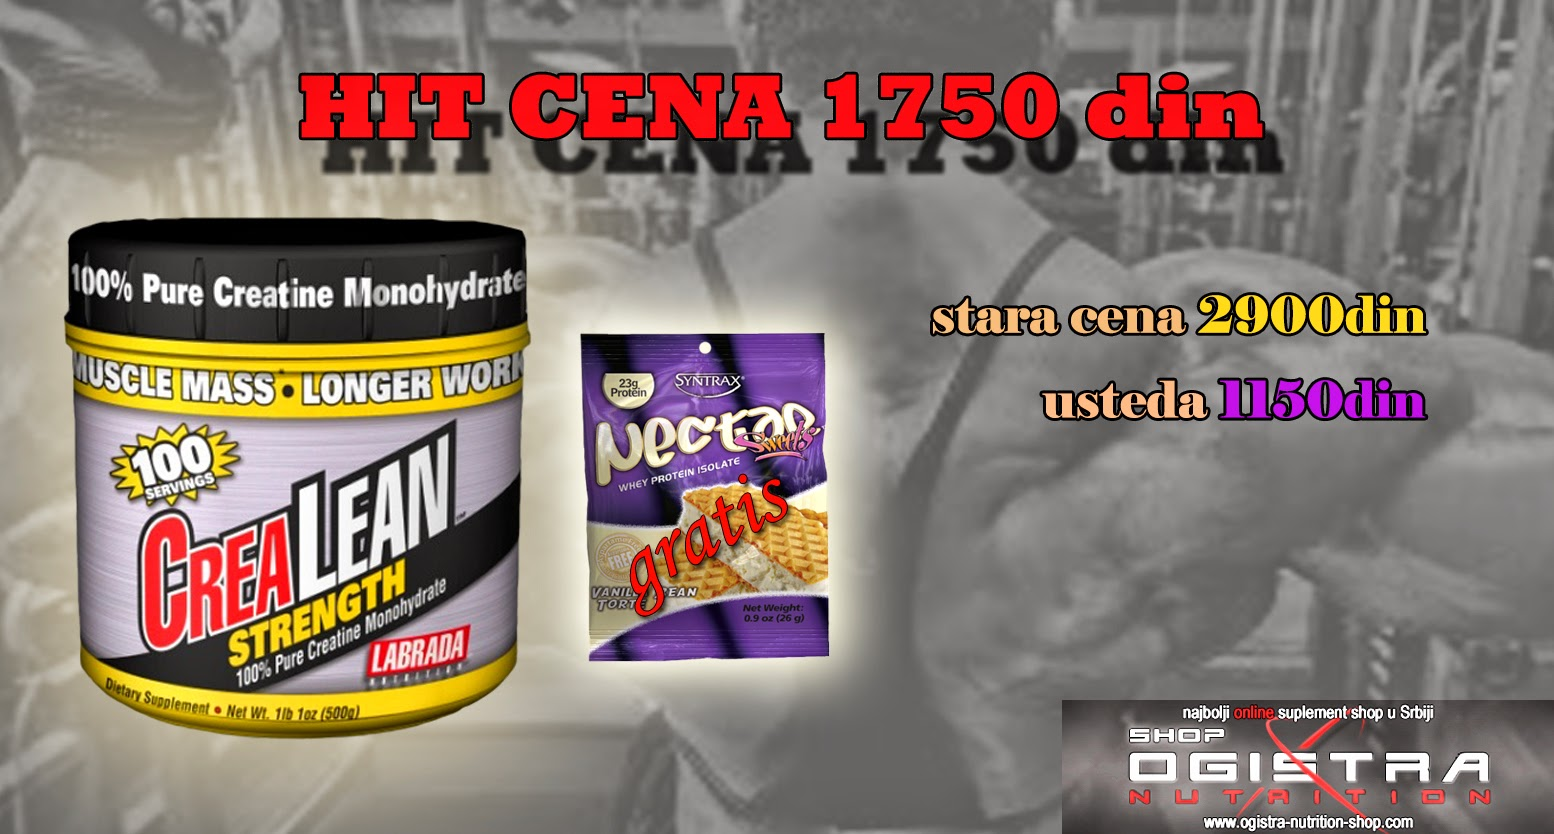 http://www.ogistra-nutrition-shop.com/index.php?dispatch=products.view&product_id=29953